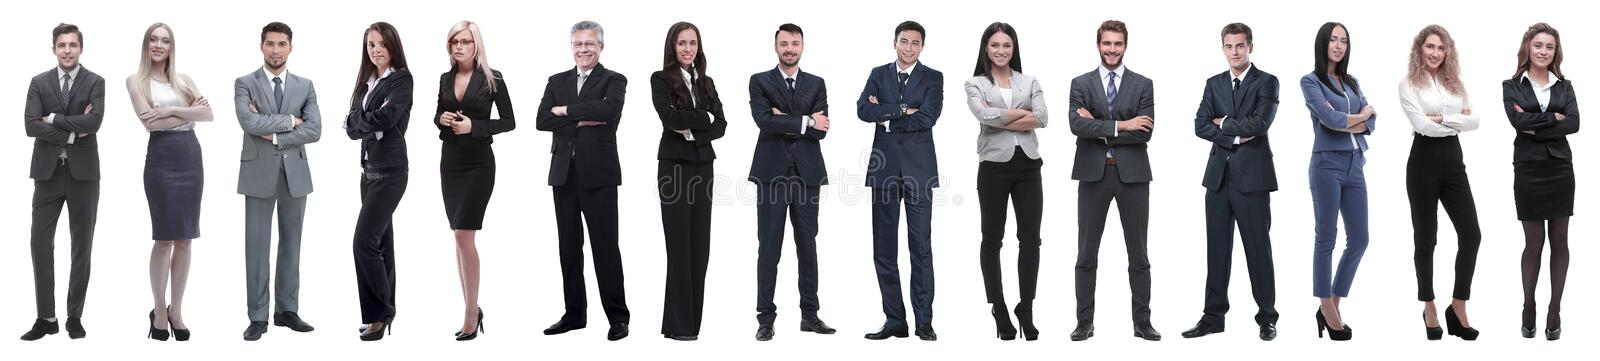 Young attractive business people - the elite business team royalty free stock photo